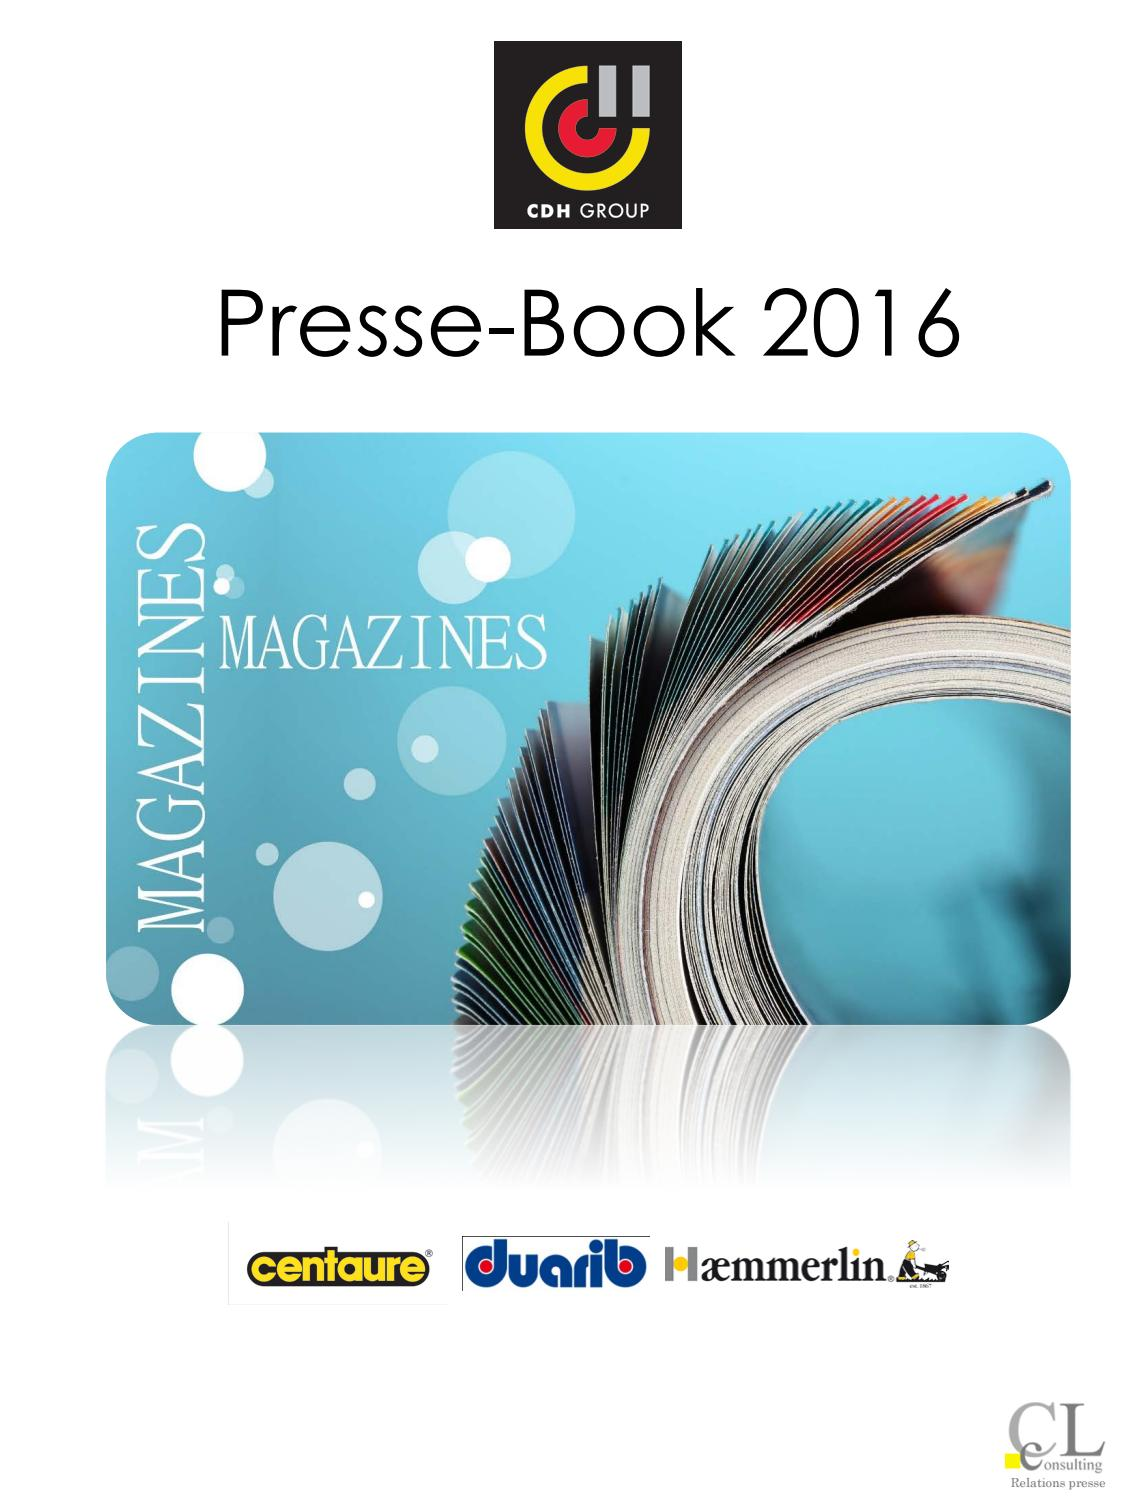 Book 2016 By Fdubas At Cdhgroupcom Issuu